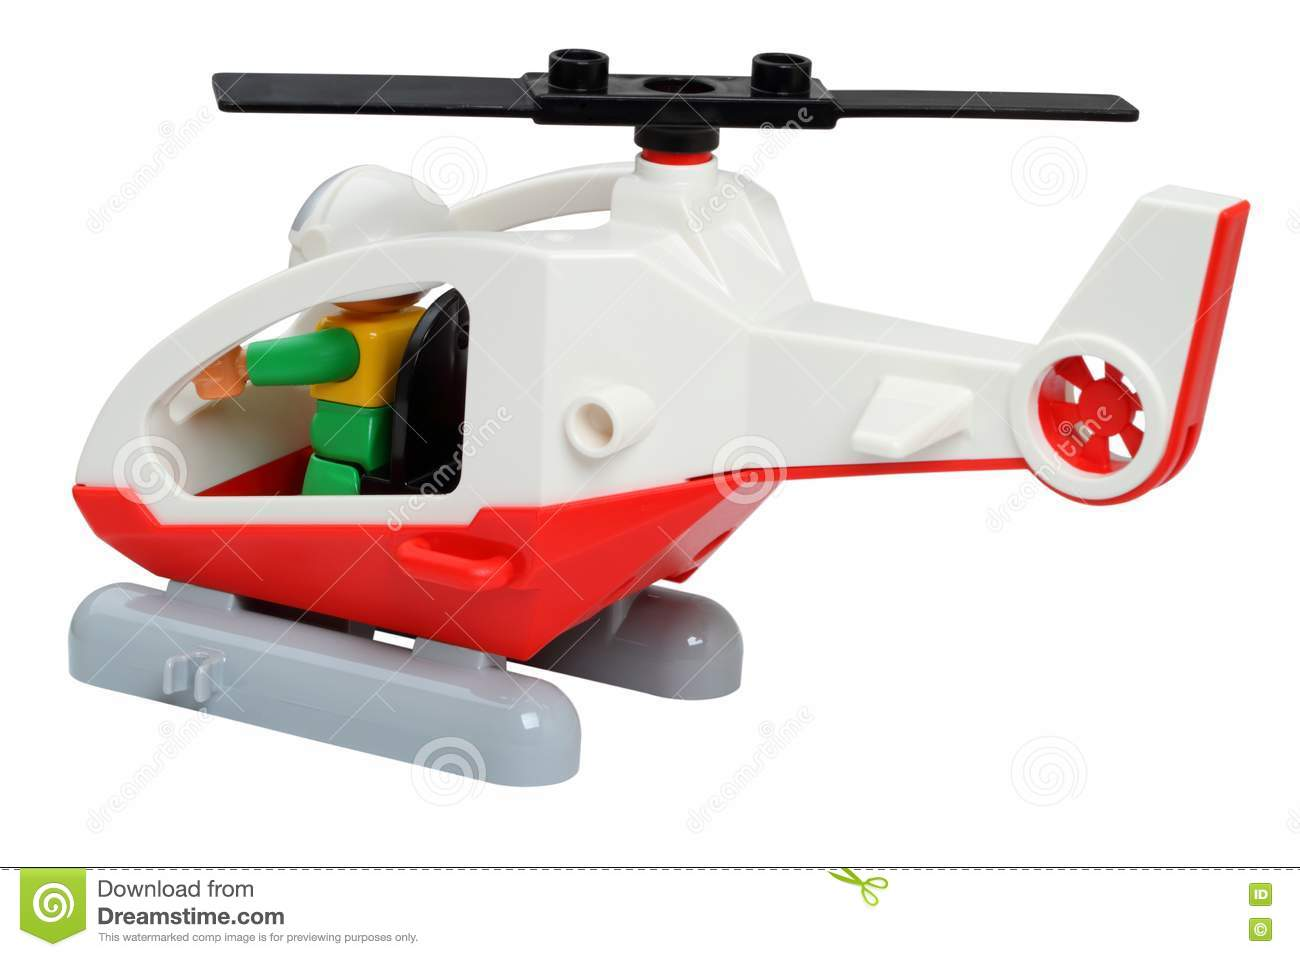 prices of helicopters with Stock Photos Plastic Toy Helicopter Image19795713 on F 4J 1 32 1 moreover Photos besides Stock Illustration Hospital Icon Set Web Symbol Design Illustrator Image45872223 also 22 in addition Stock Photos Plastic Toy Helicopter Image19795713.